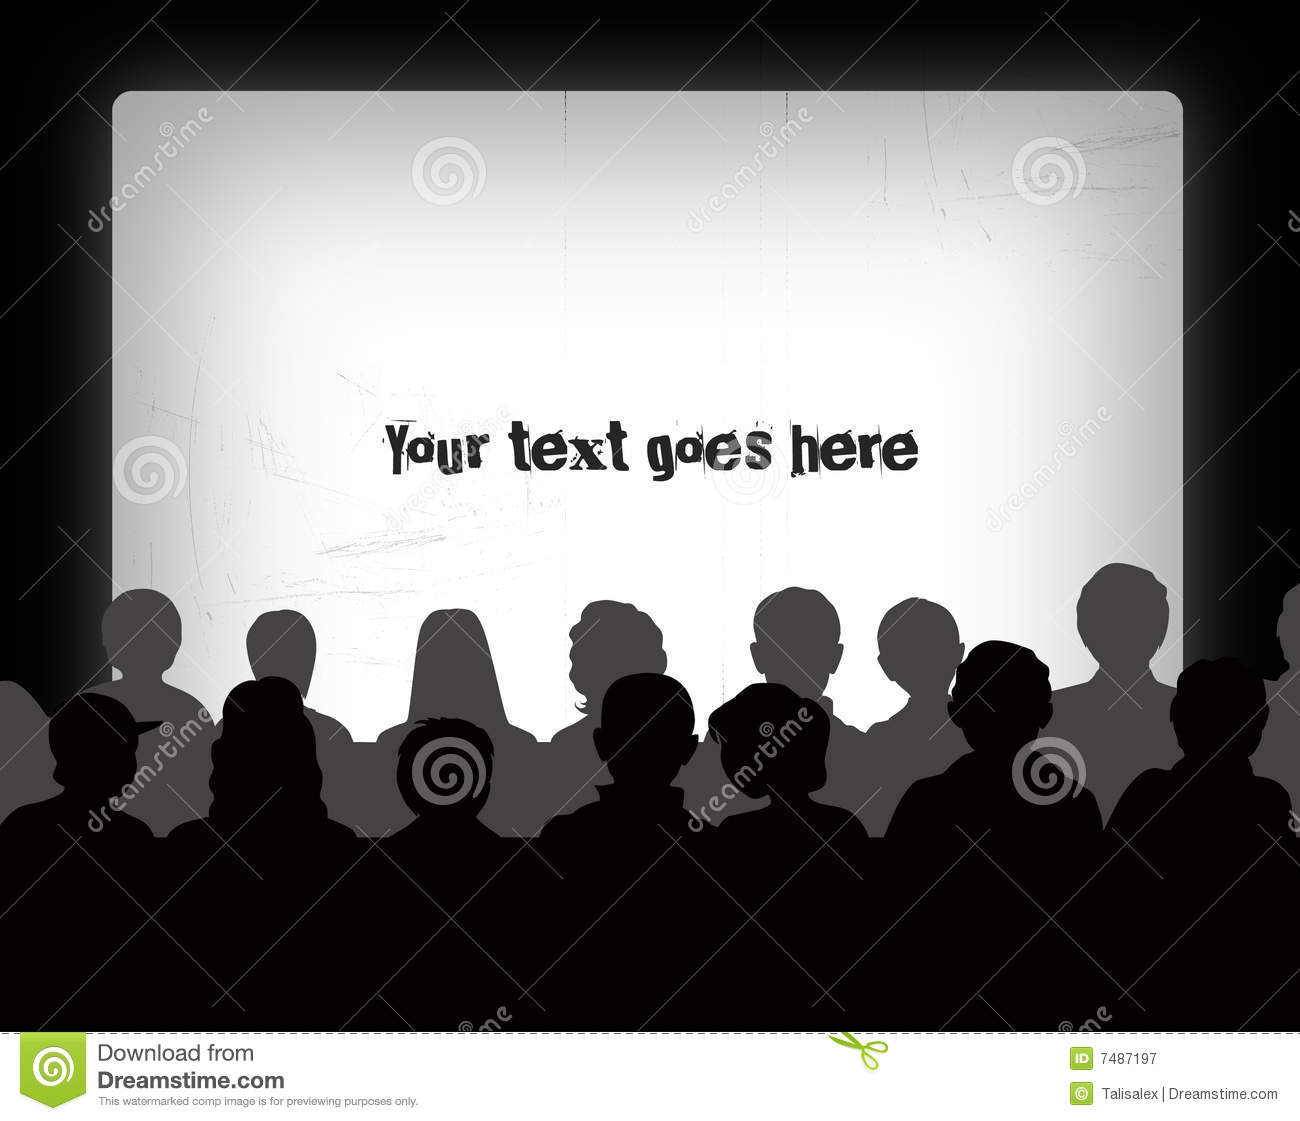 Audience silhouettes stock illustration. Illustration of event.